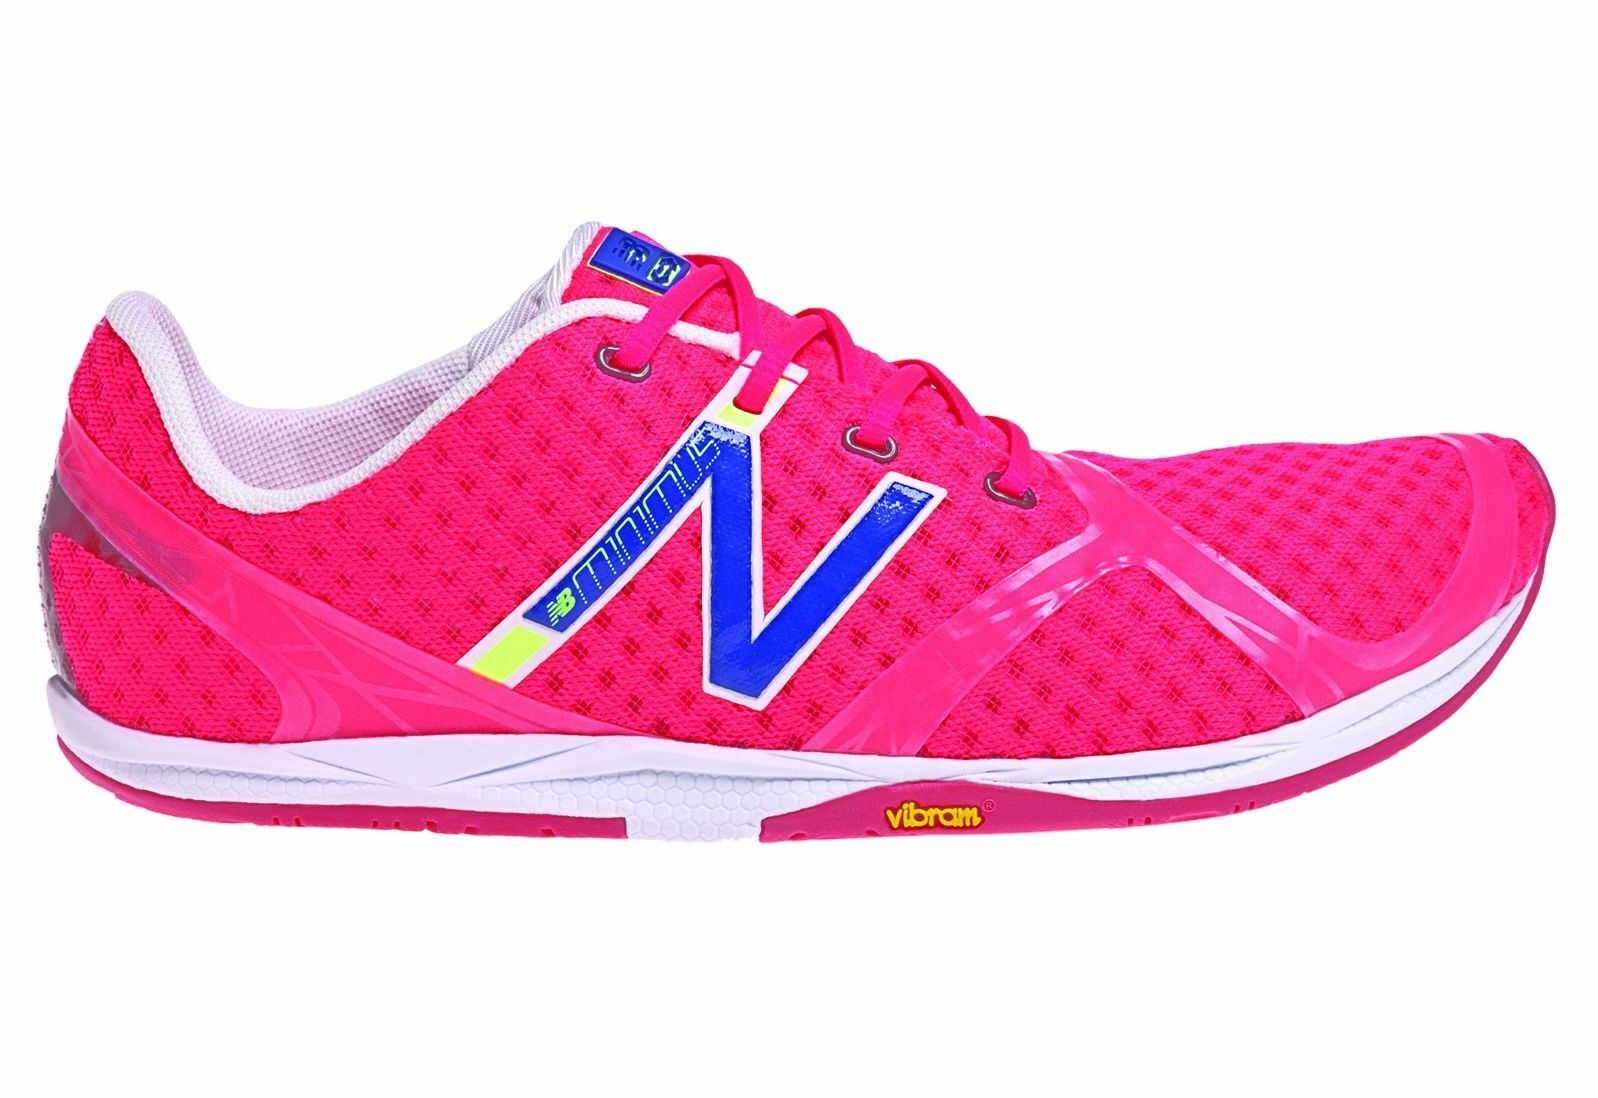 New Balance Minimus WR00 PB WR00PB Running Shoes Women's - Pink No Box